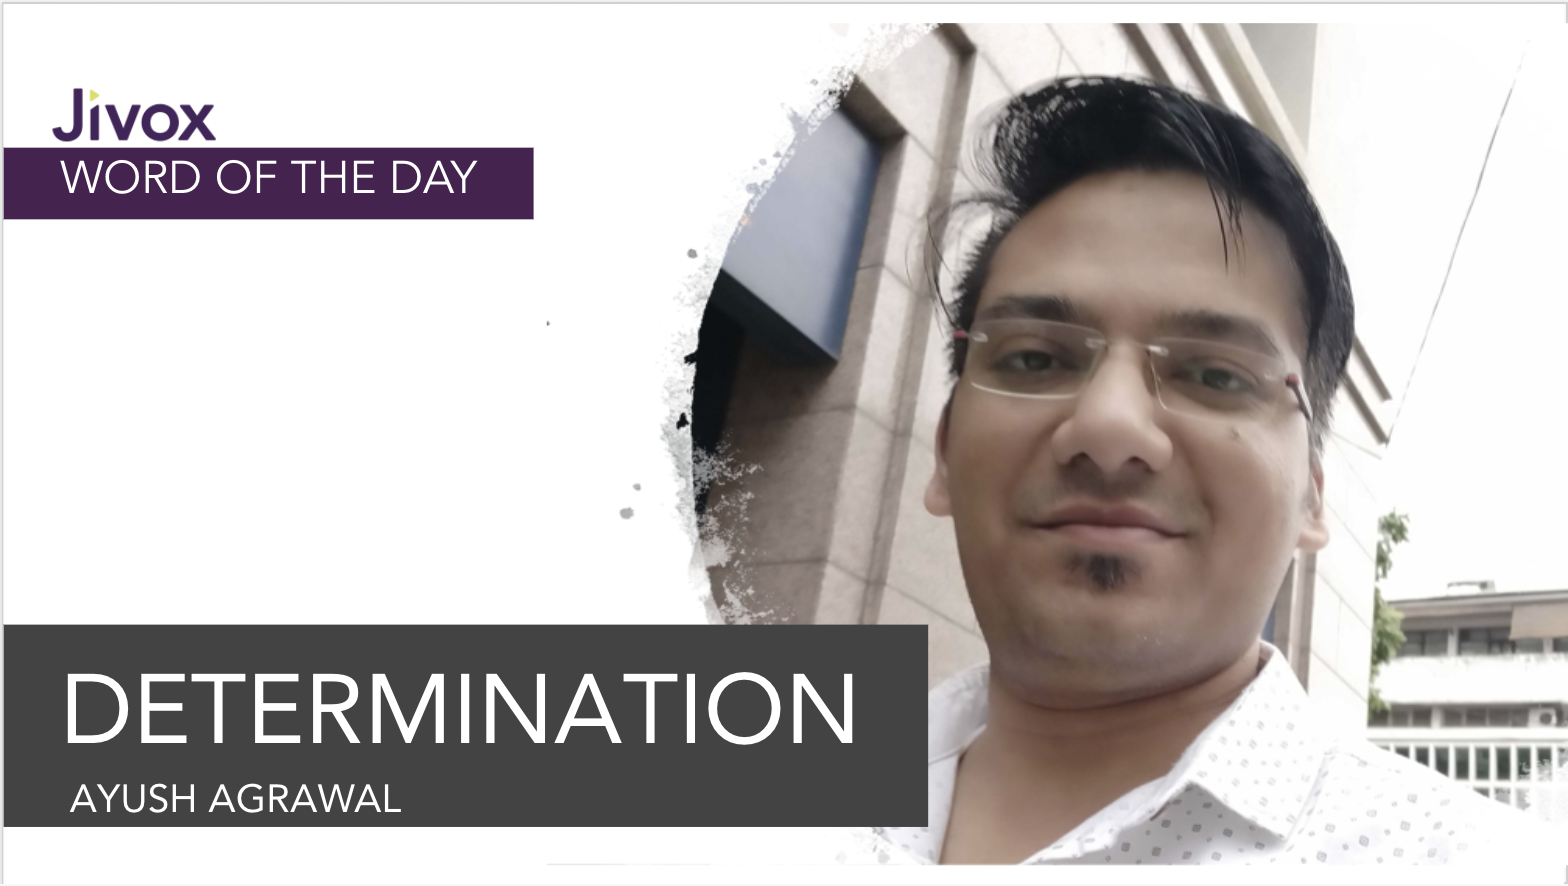 Jivox Word of the Day: Determination